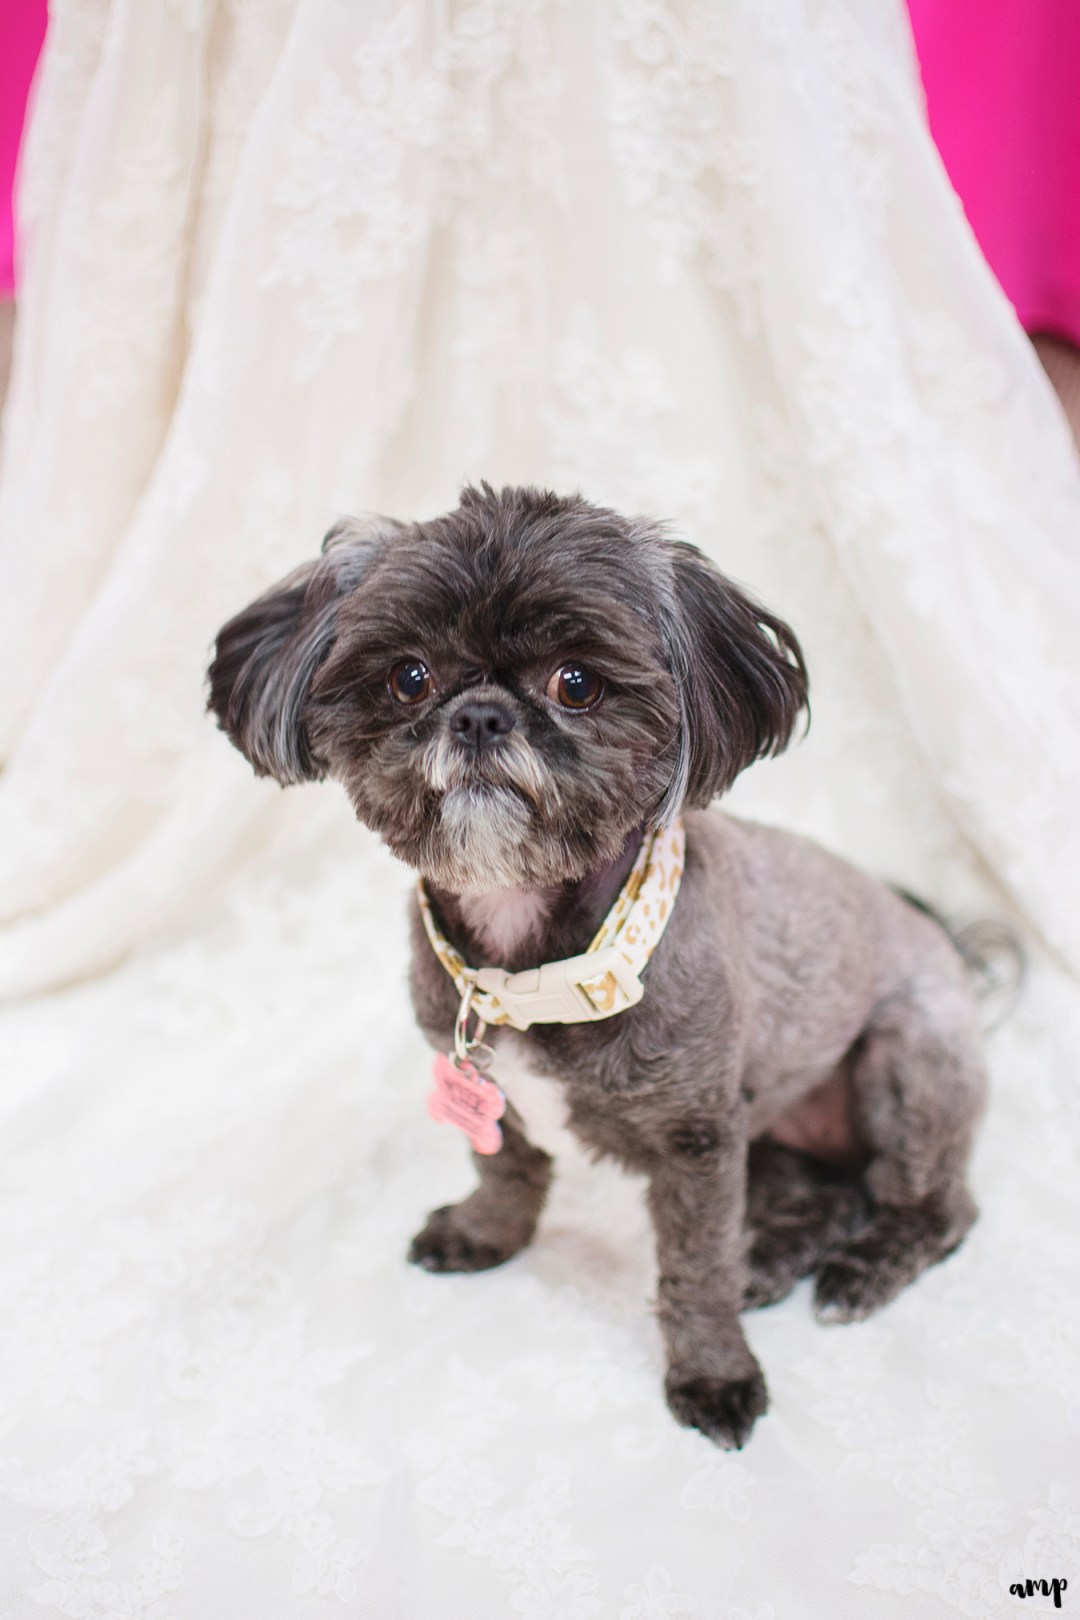 Bride & groom's puppy on wedding dress